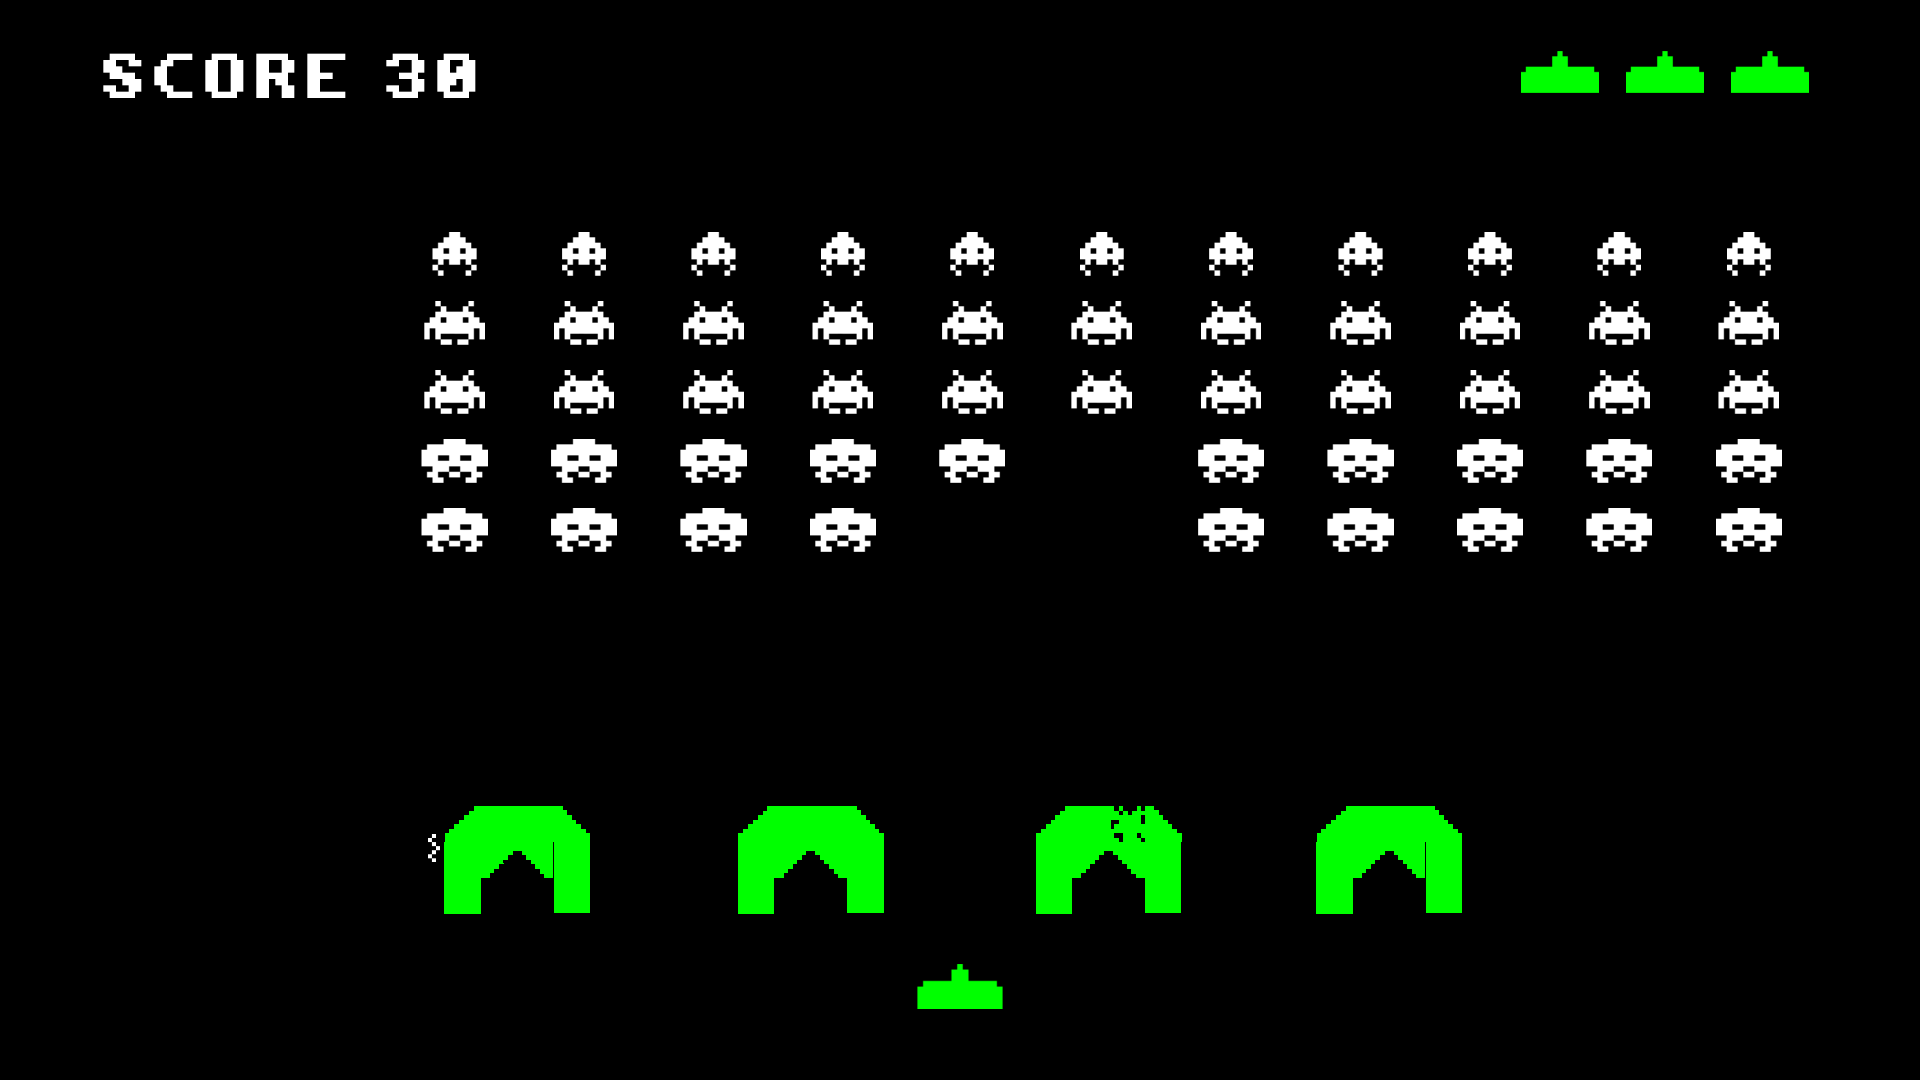 1978 Invader screenshot 3